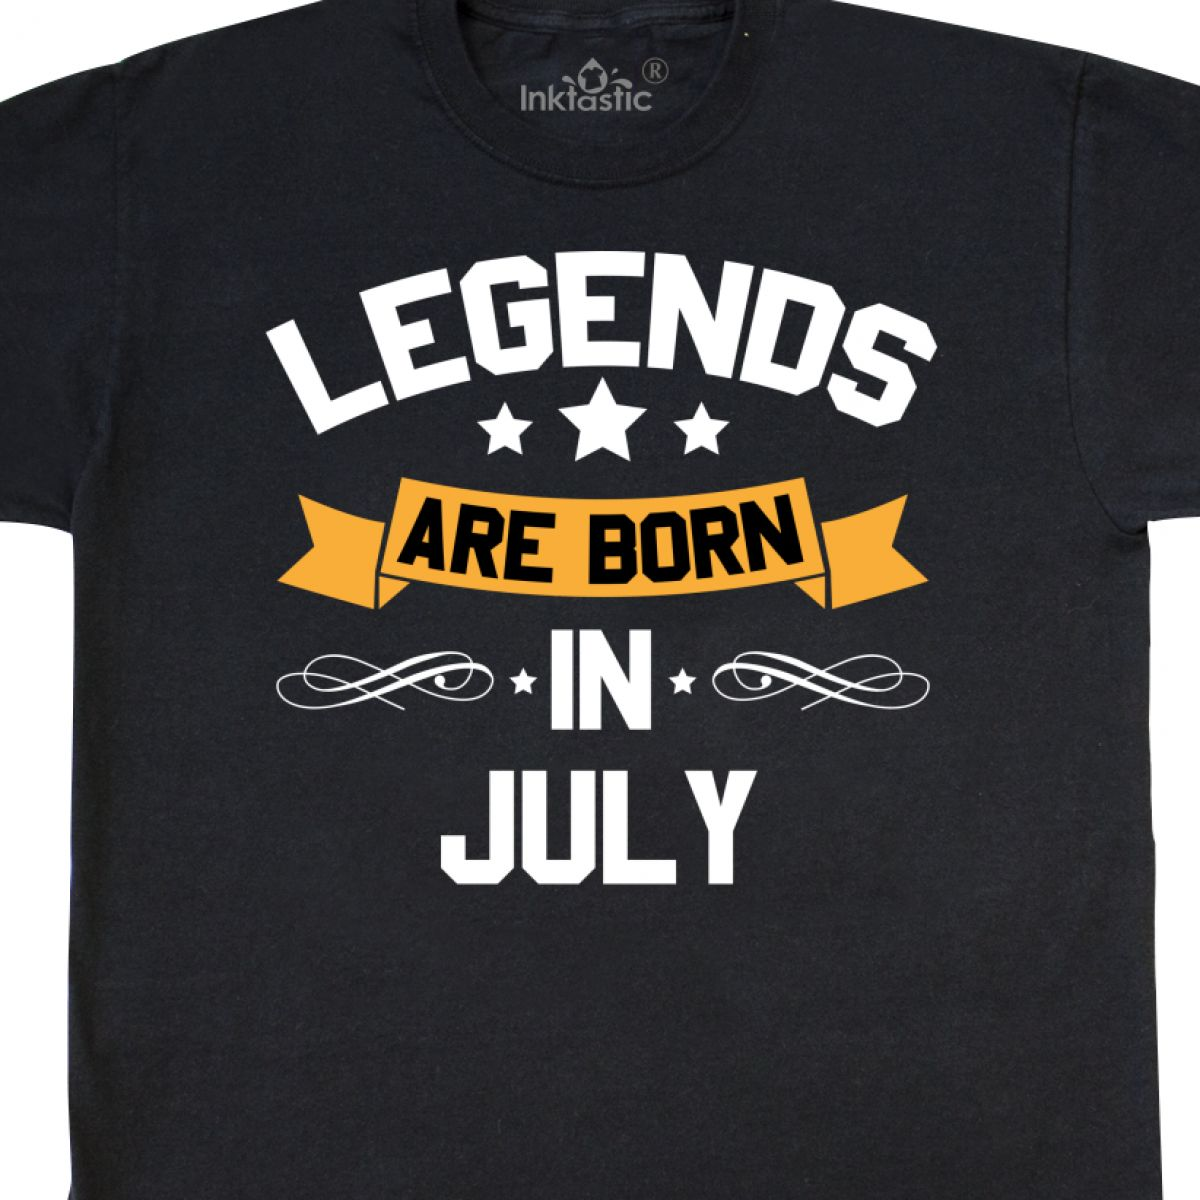 INKtastic Legends Are Born In July T Shirt Birthdays Month Birthday